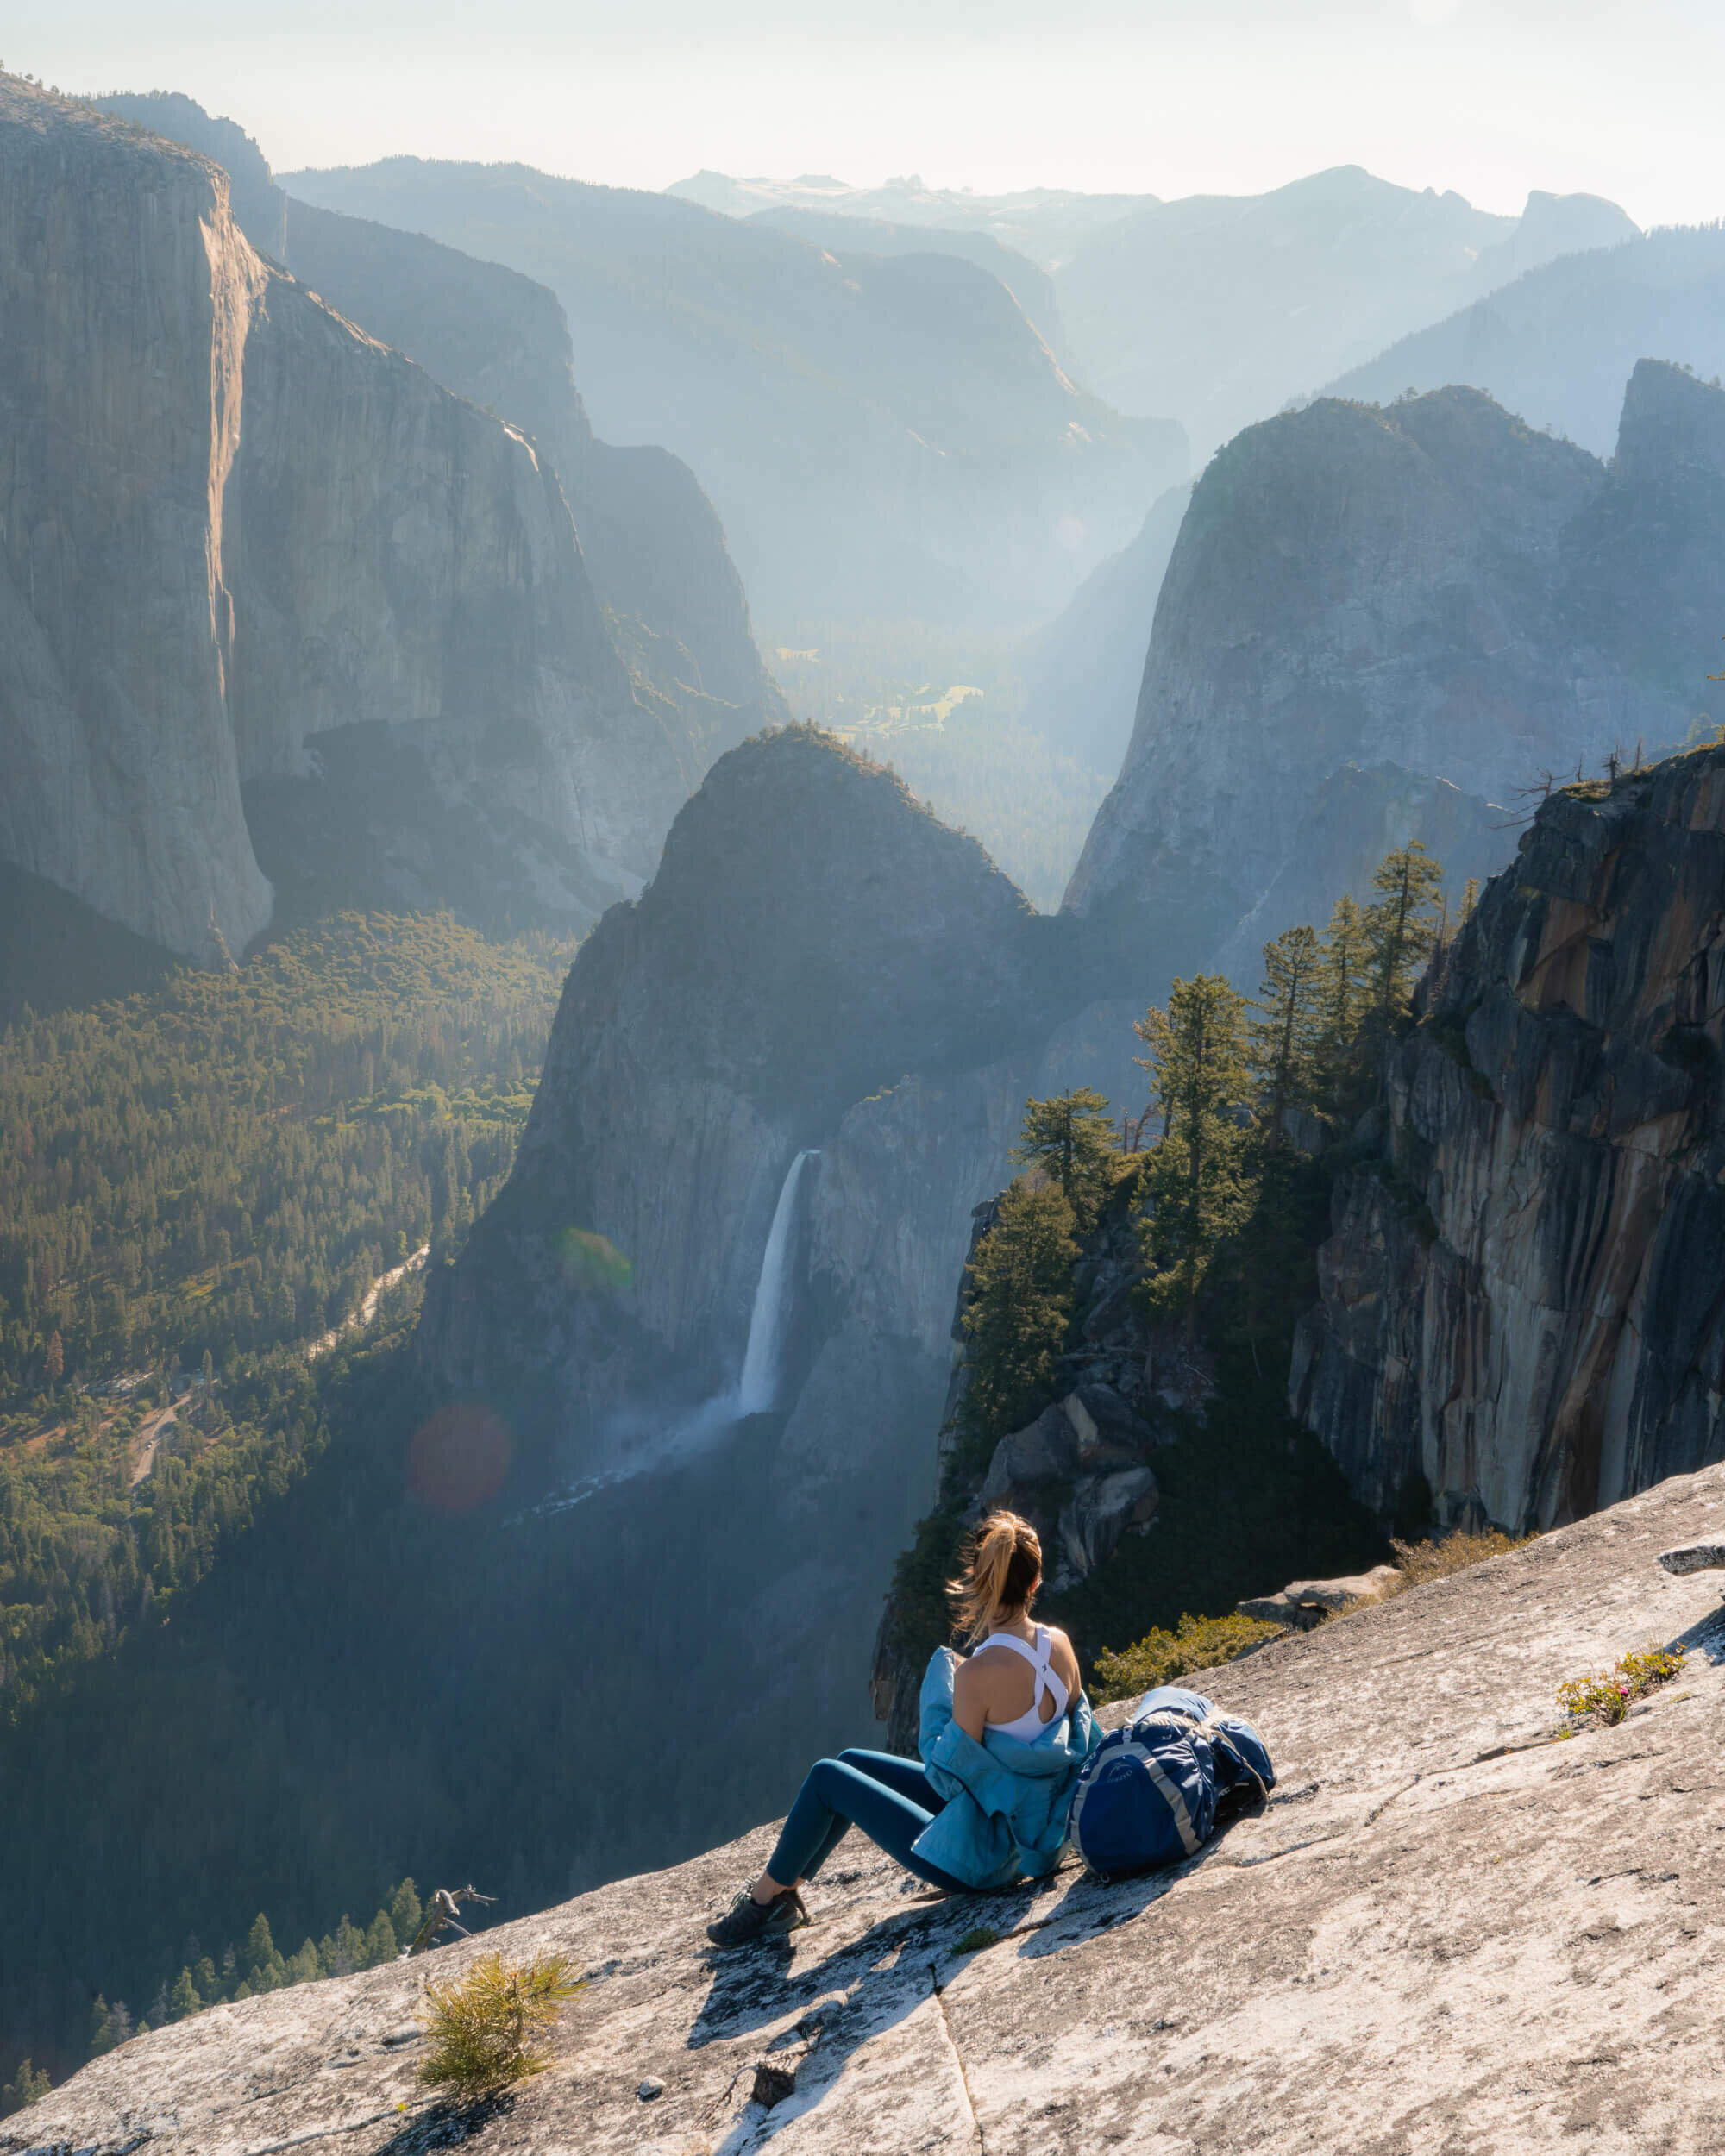 The Pohono Trail rewards hikers with stunning viewpoints of Yosemite Valley from the south rim.